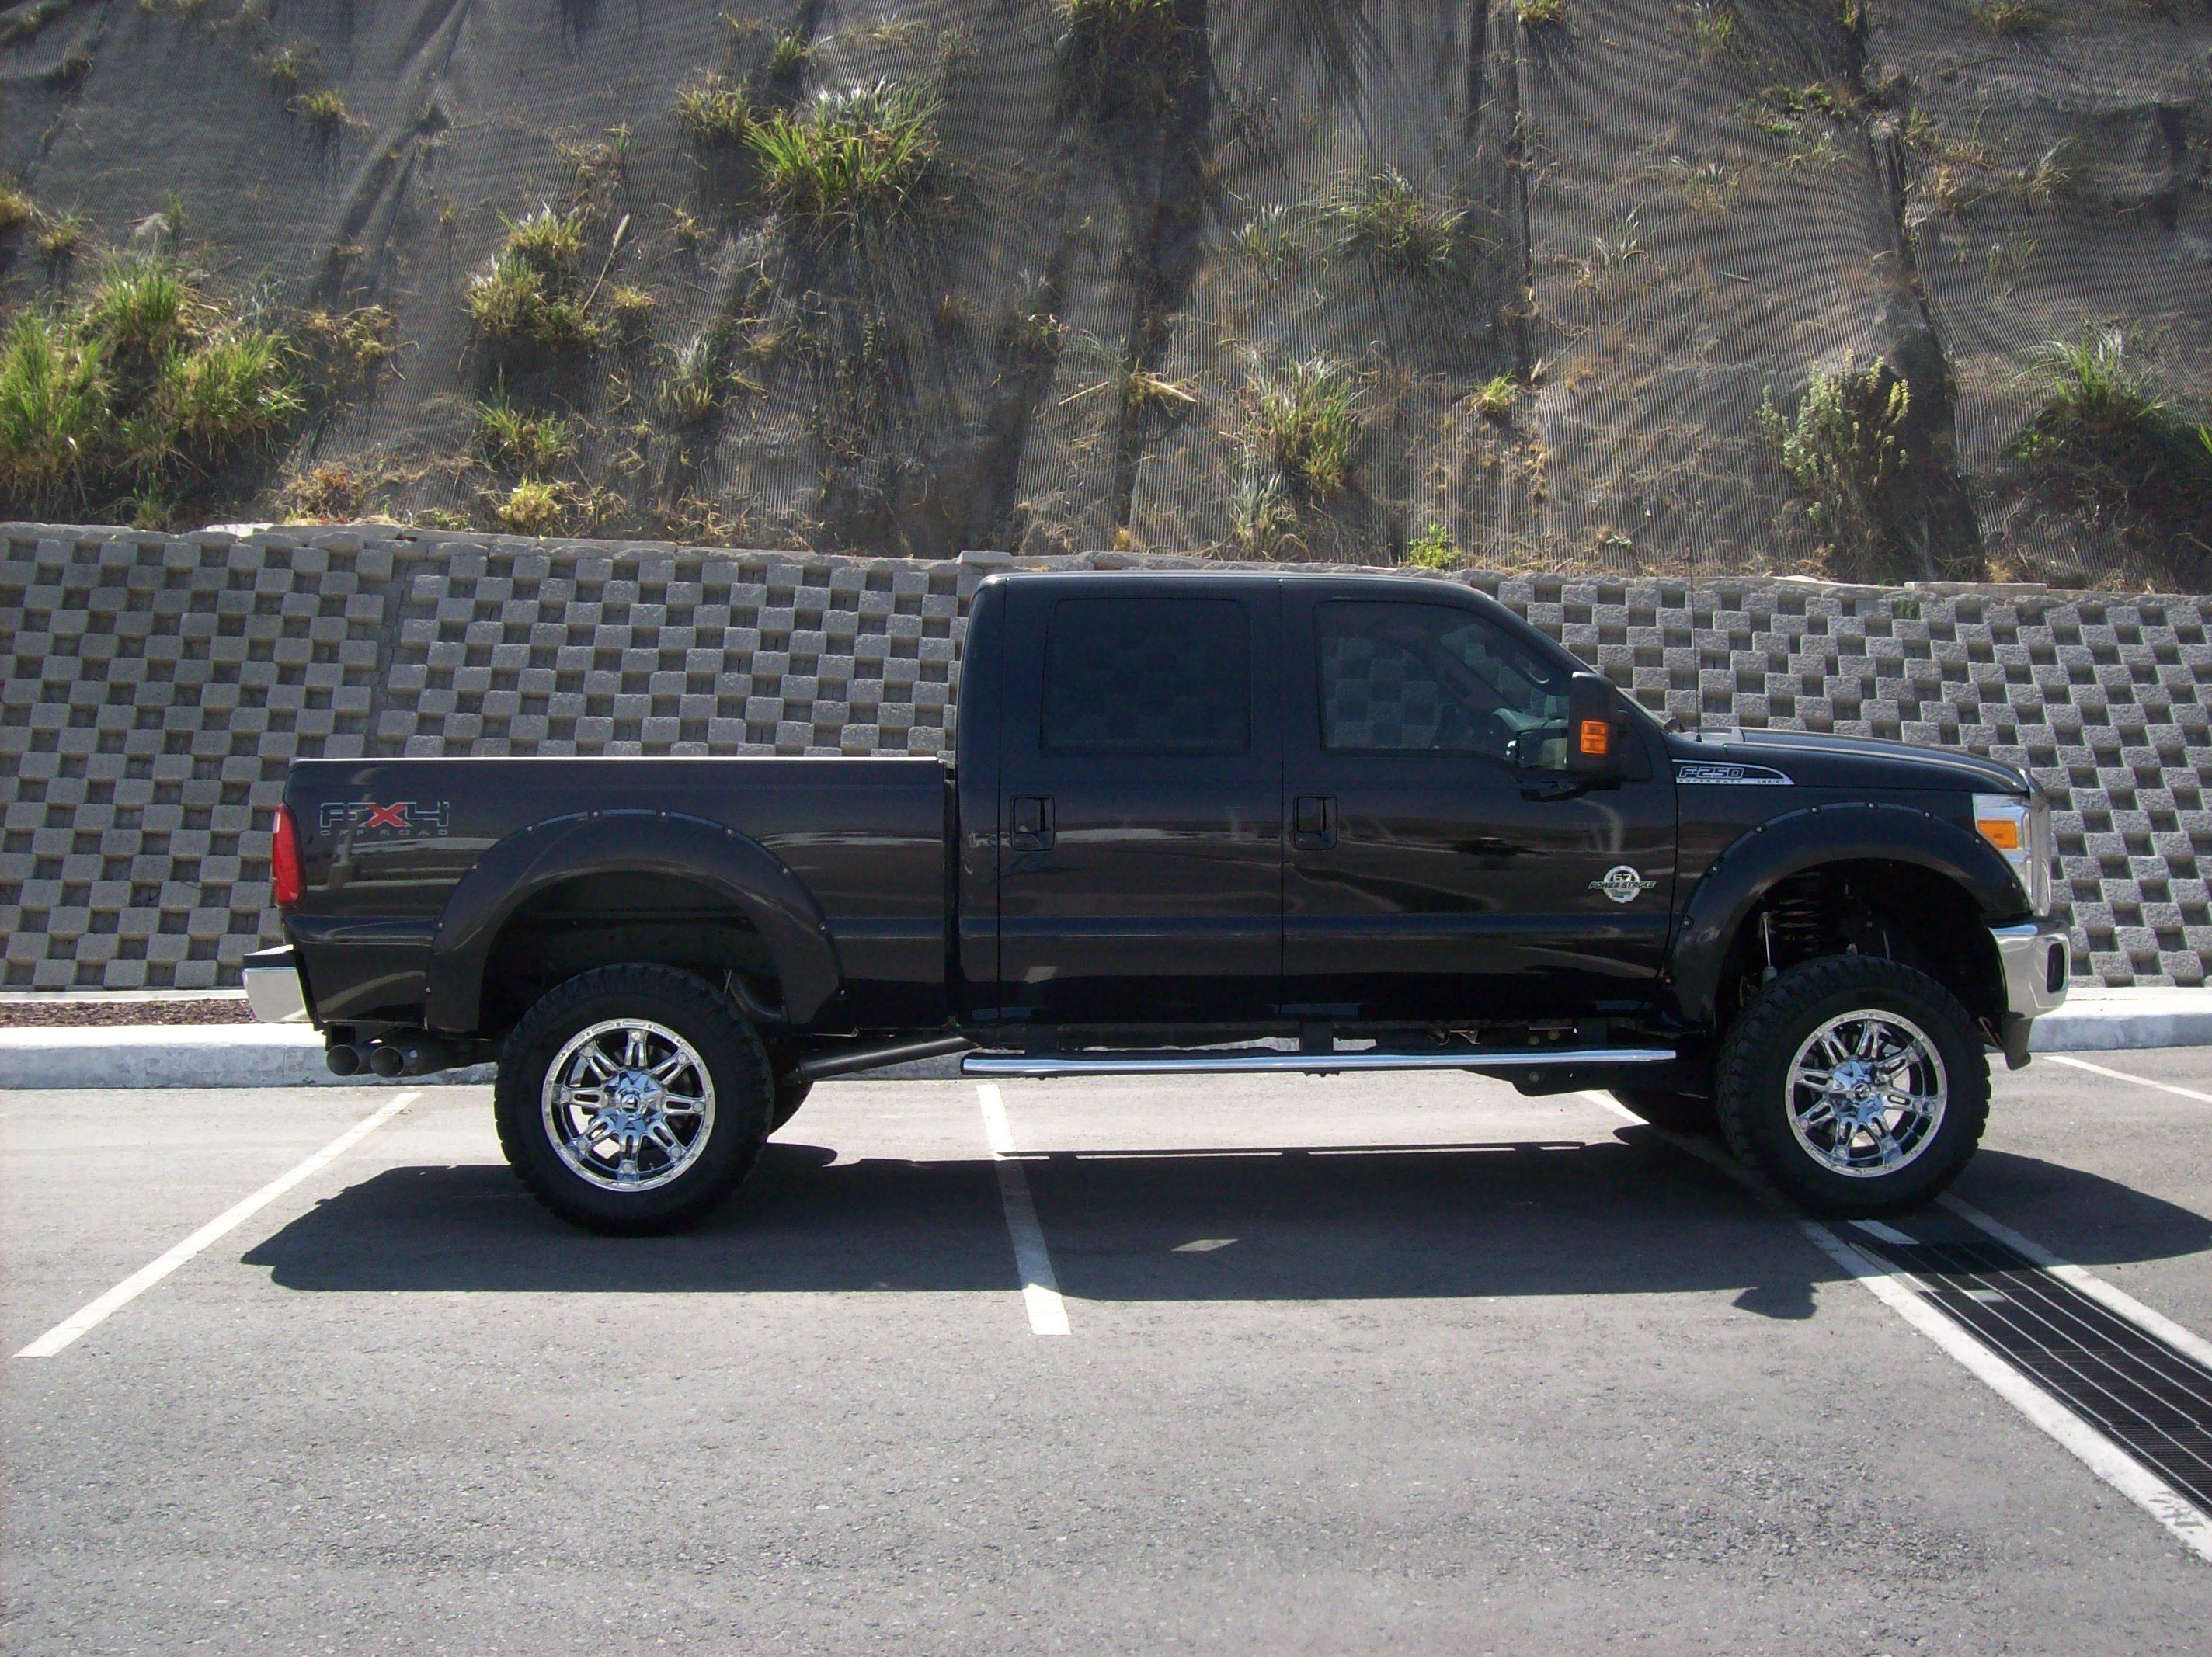 Ford F250 8 Foot Bed For Sale >> Sinaloastang 2011 Ford F250 Super Duty Crew Cablariat Pickup